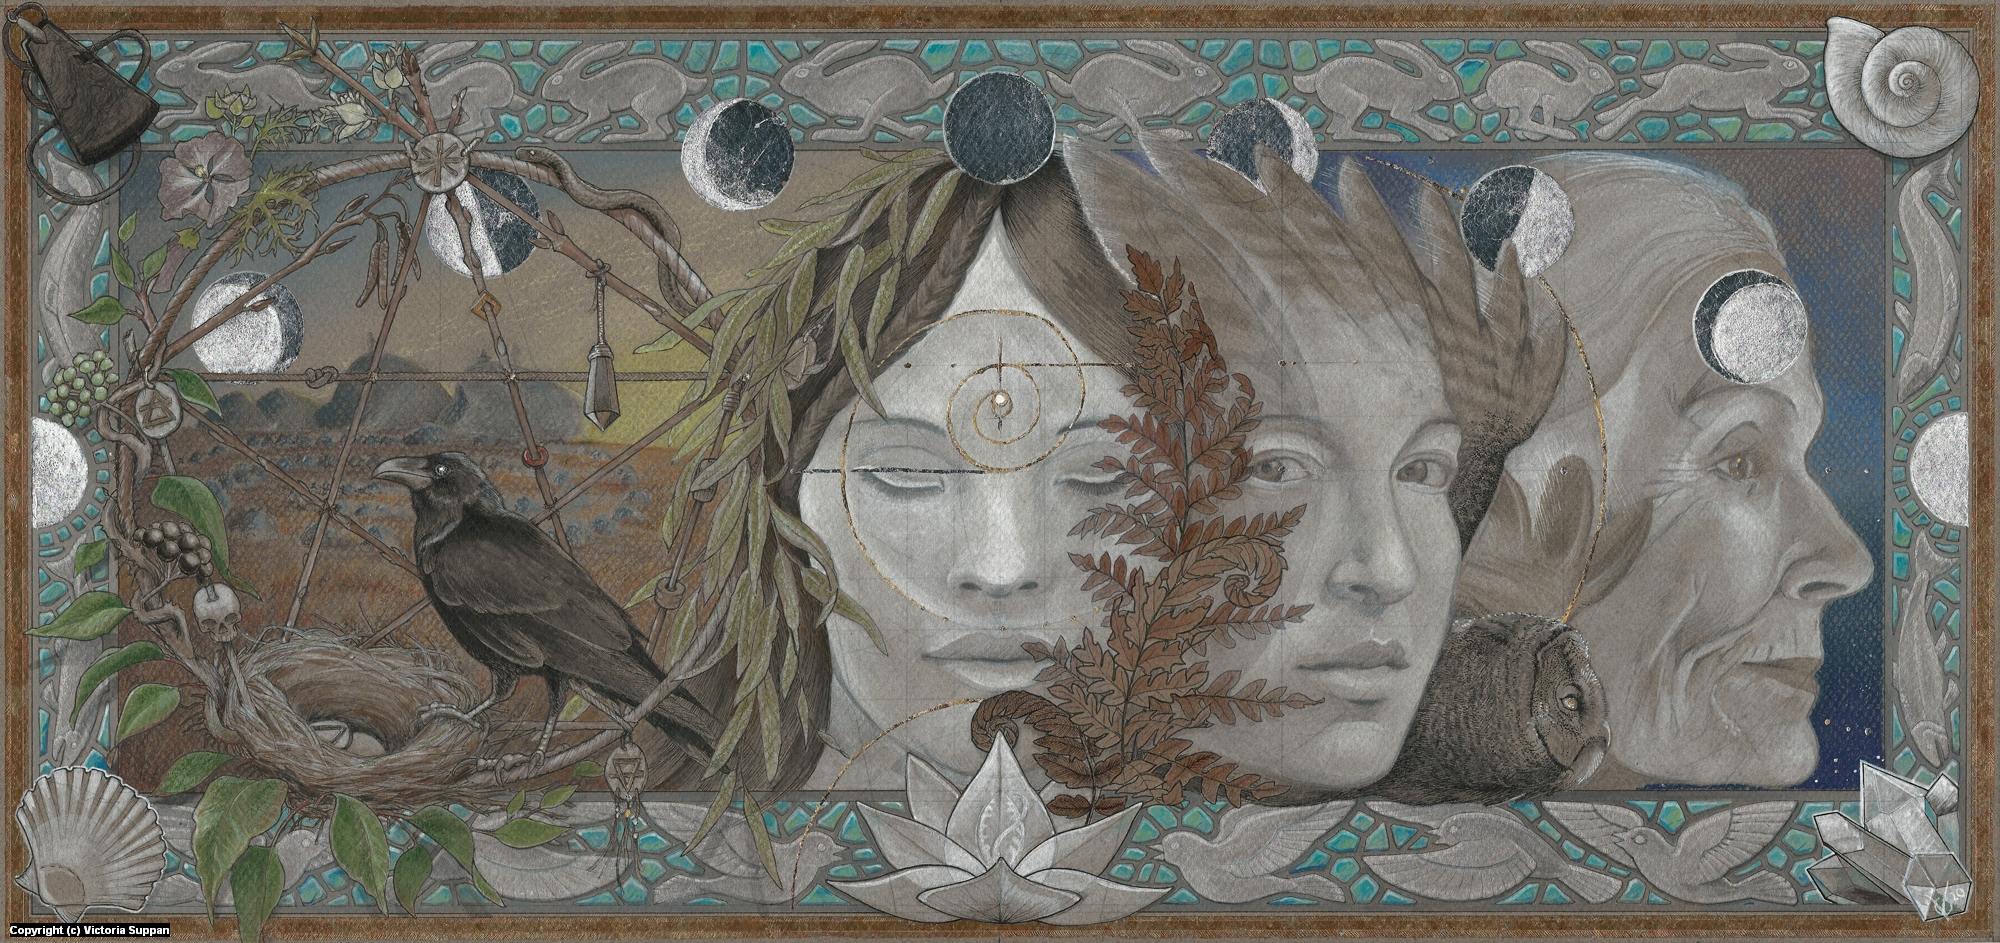 Gifts of Sacred Nature Artwork by Victoria Suppan